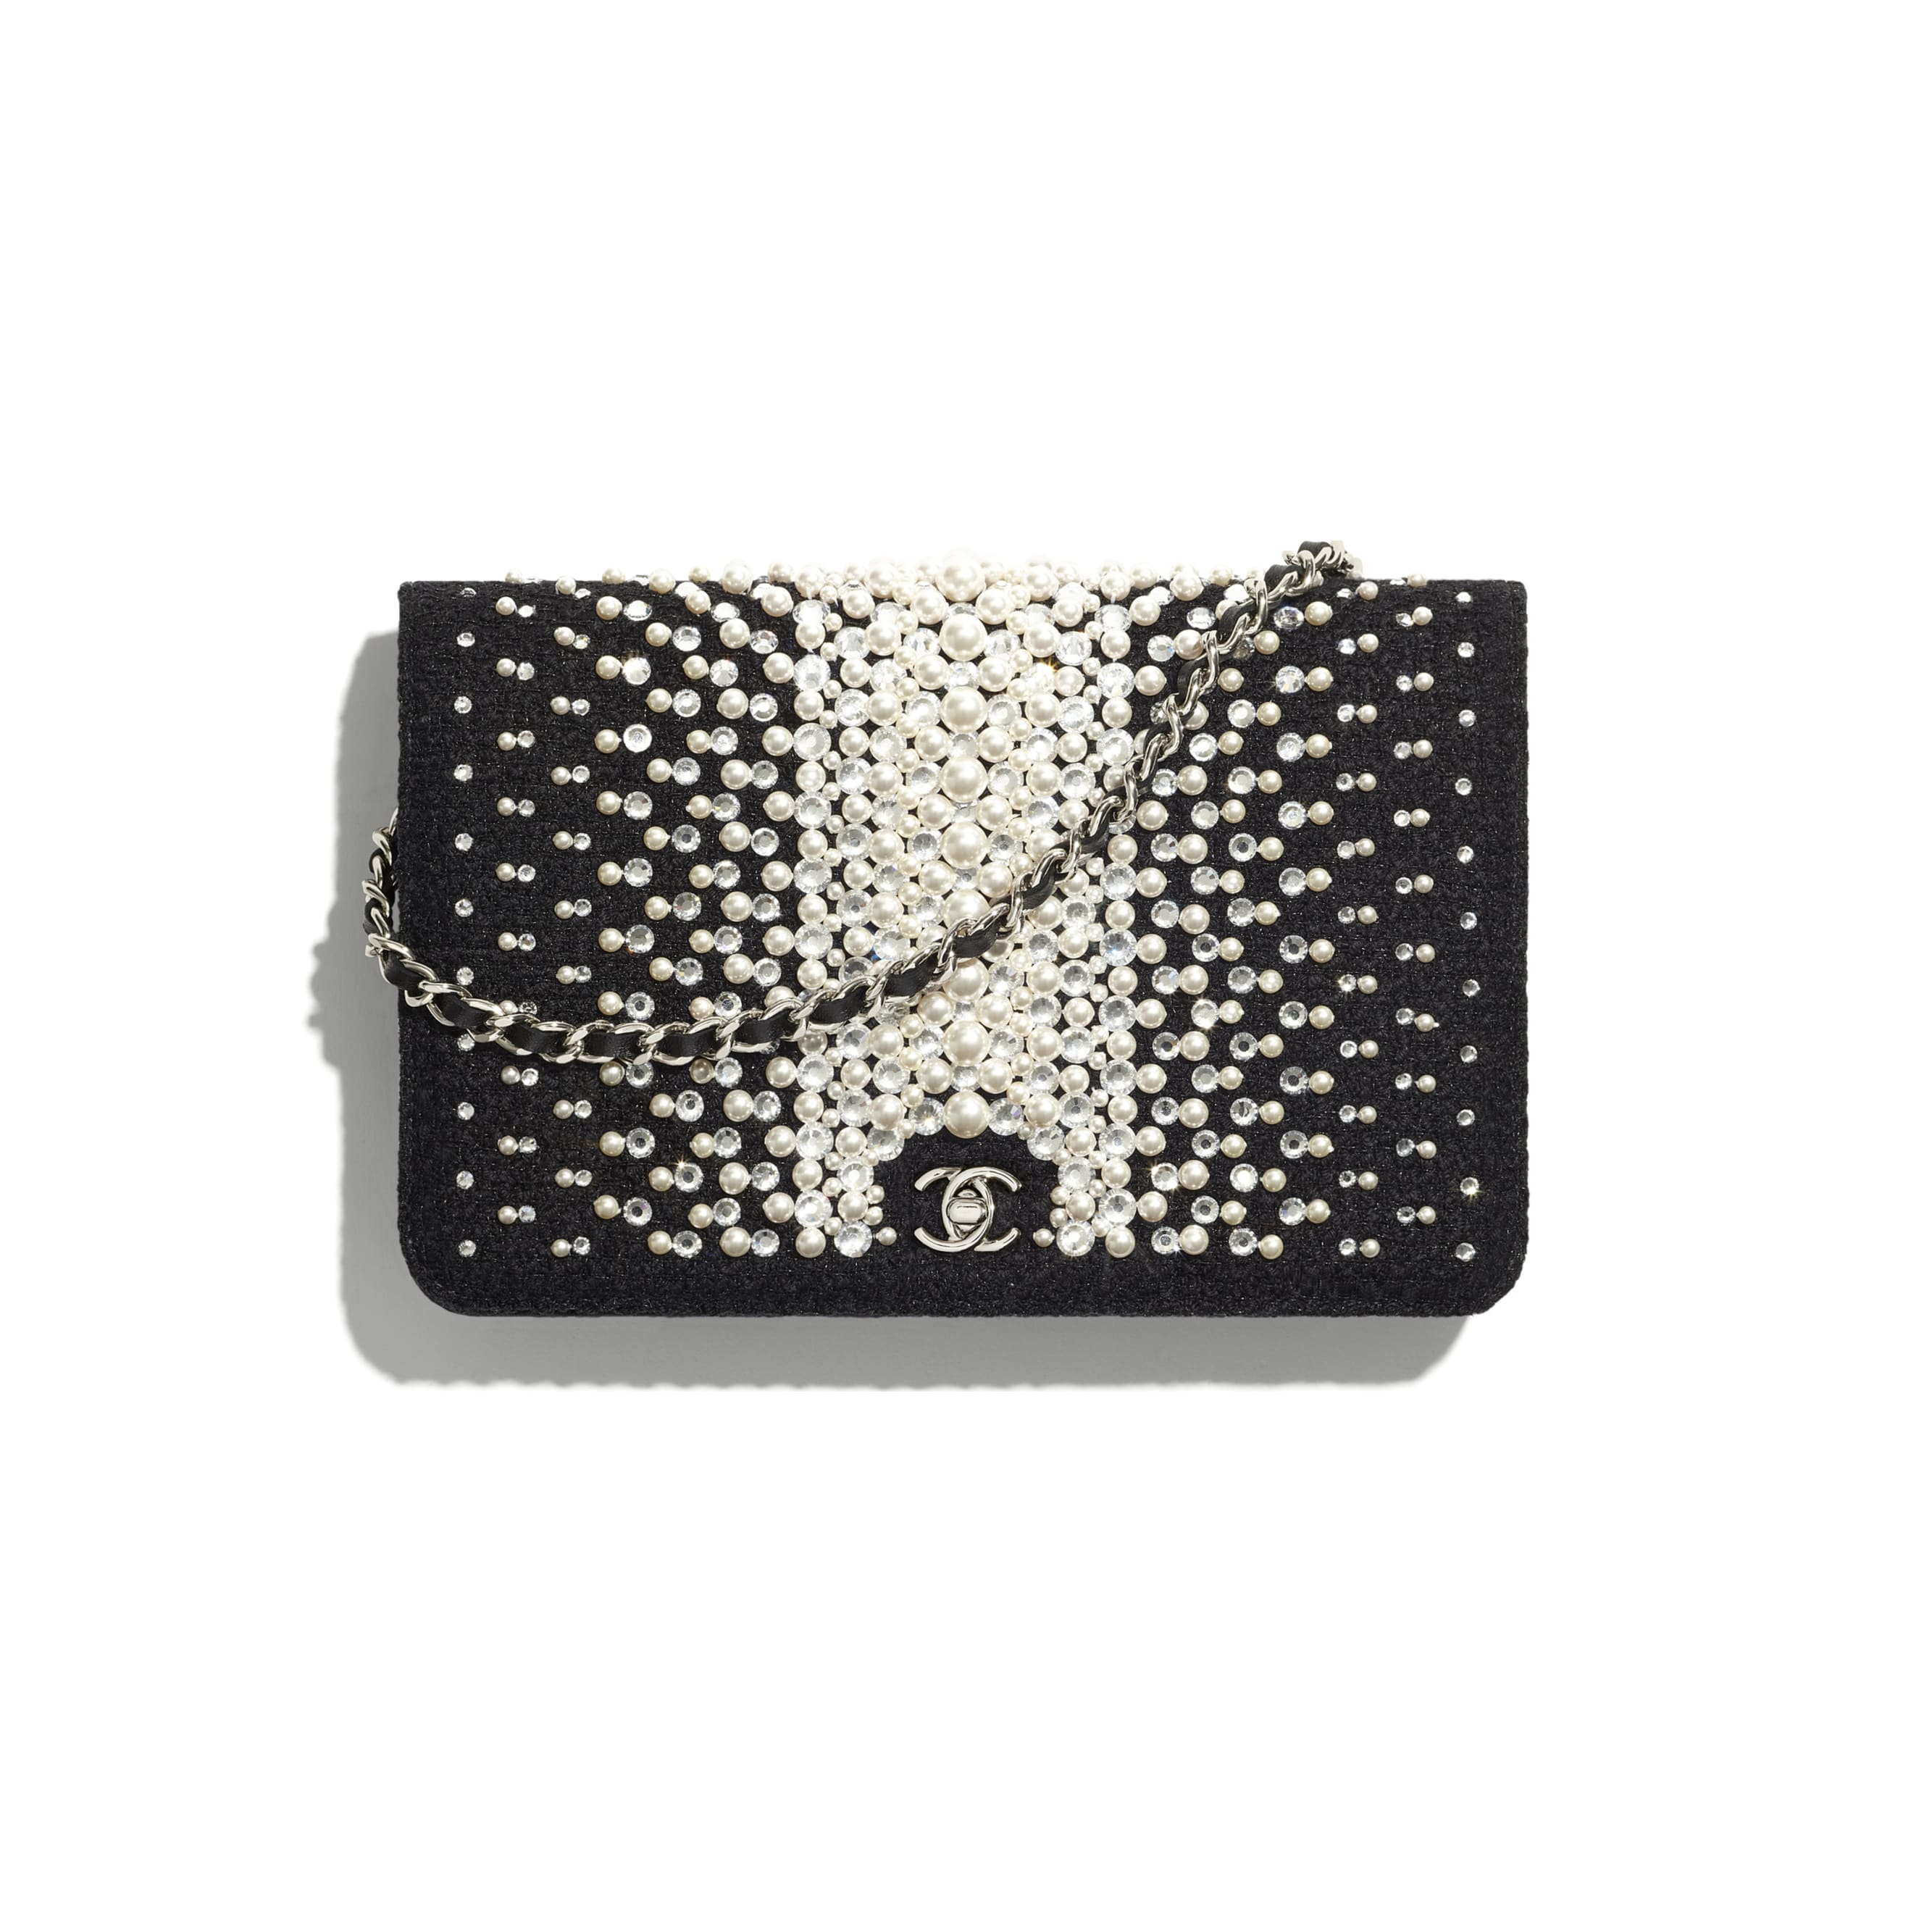 Wallet On Chain - Black - Embroidered Tweed, Crystal Pearls, Strass & Silver-Tone Metal - CHANEL - Default view - see standard sized version